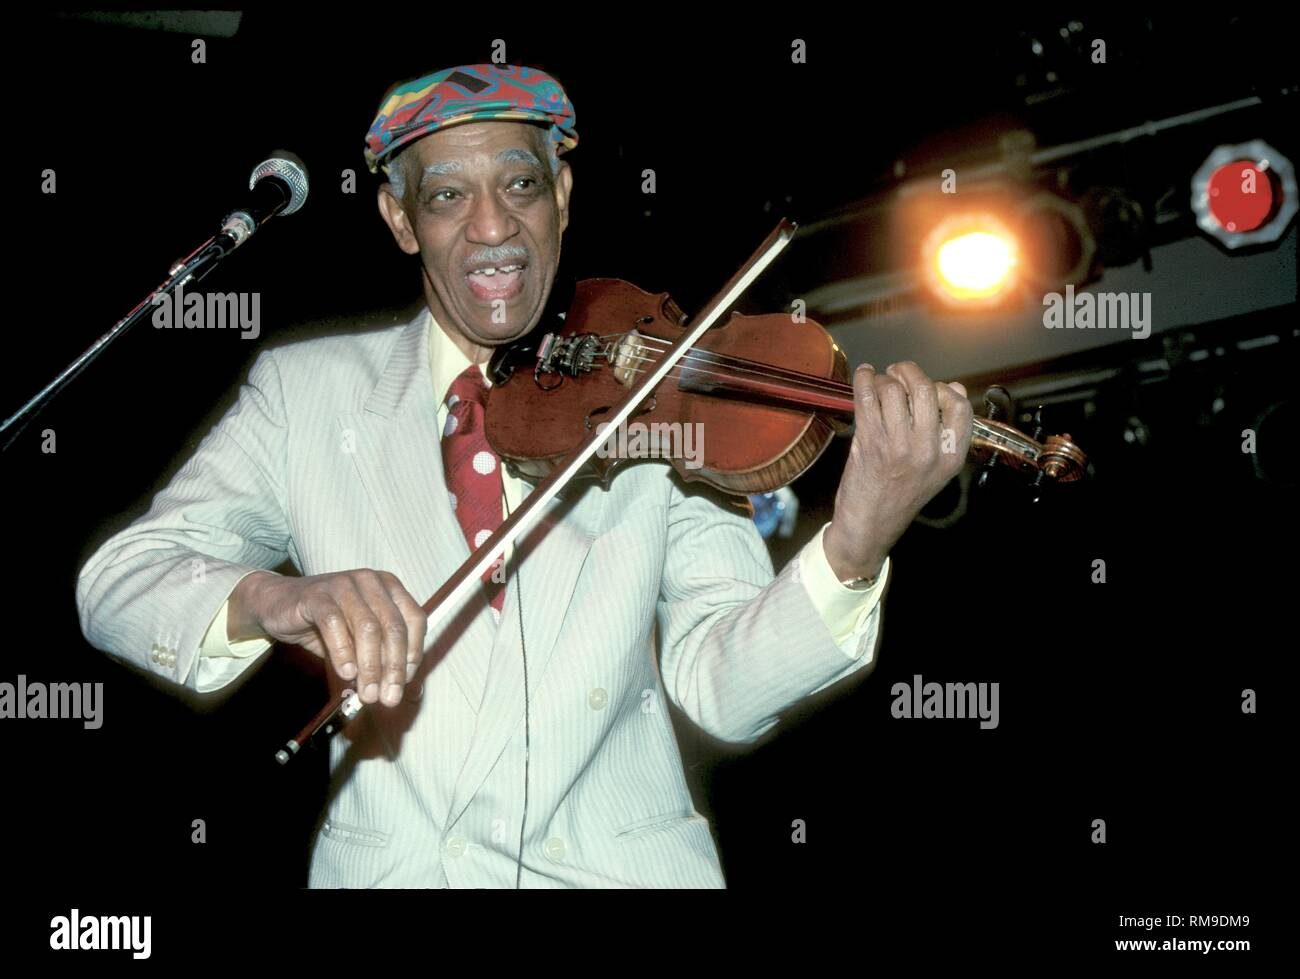 Violinist Papa John Creach of the Jefferson Airplane is shown performing on stage during a 'live'concert appearance. - Stock Image